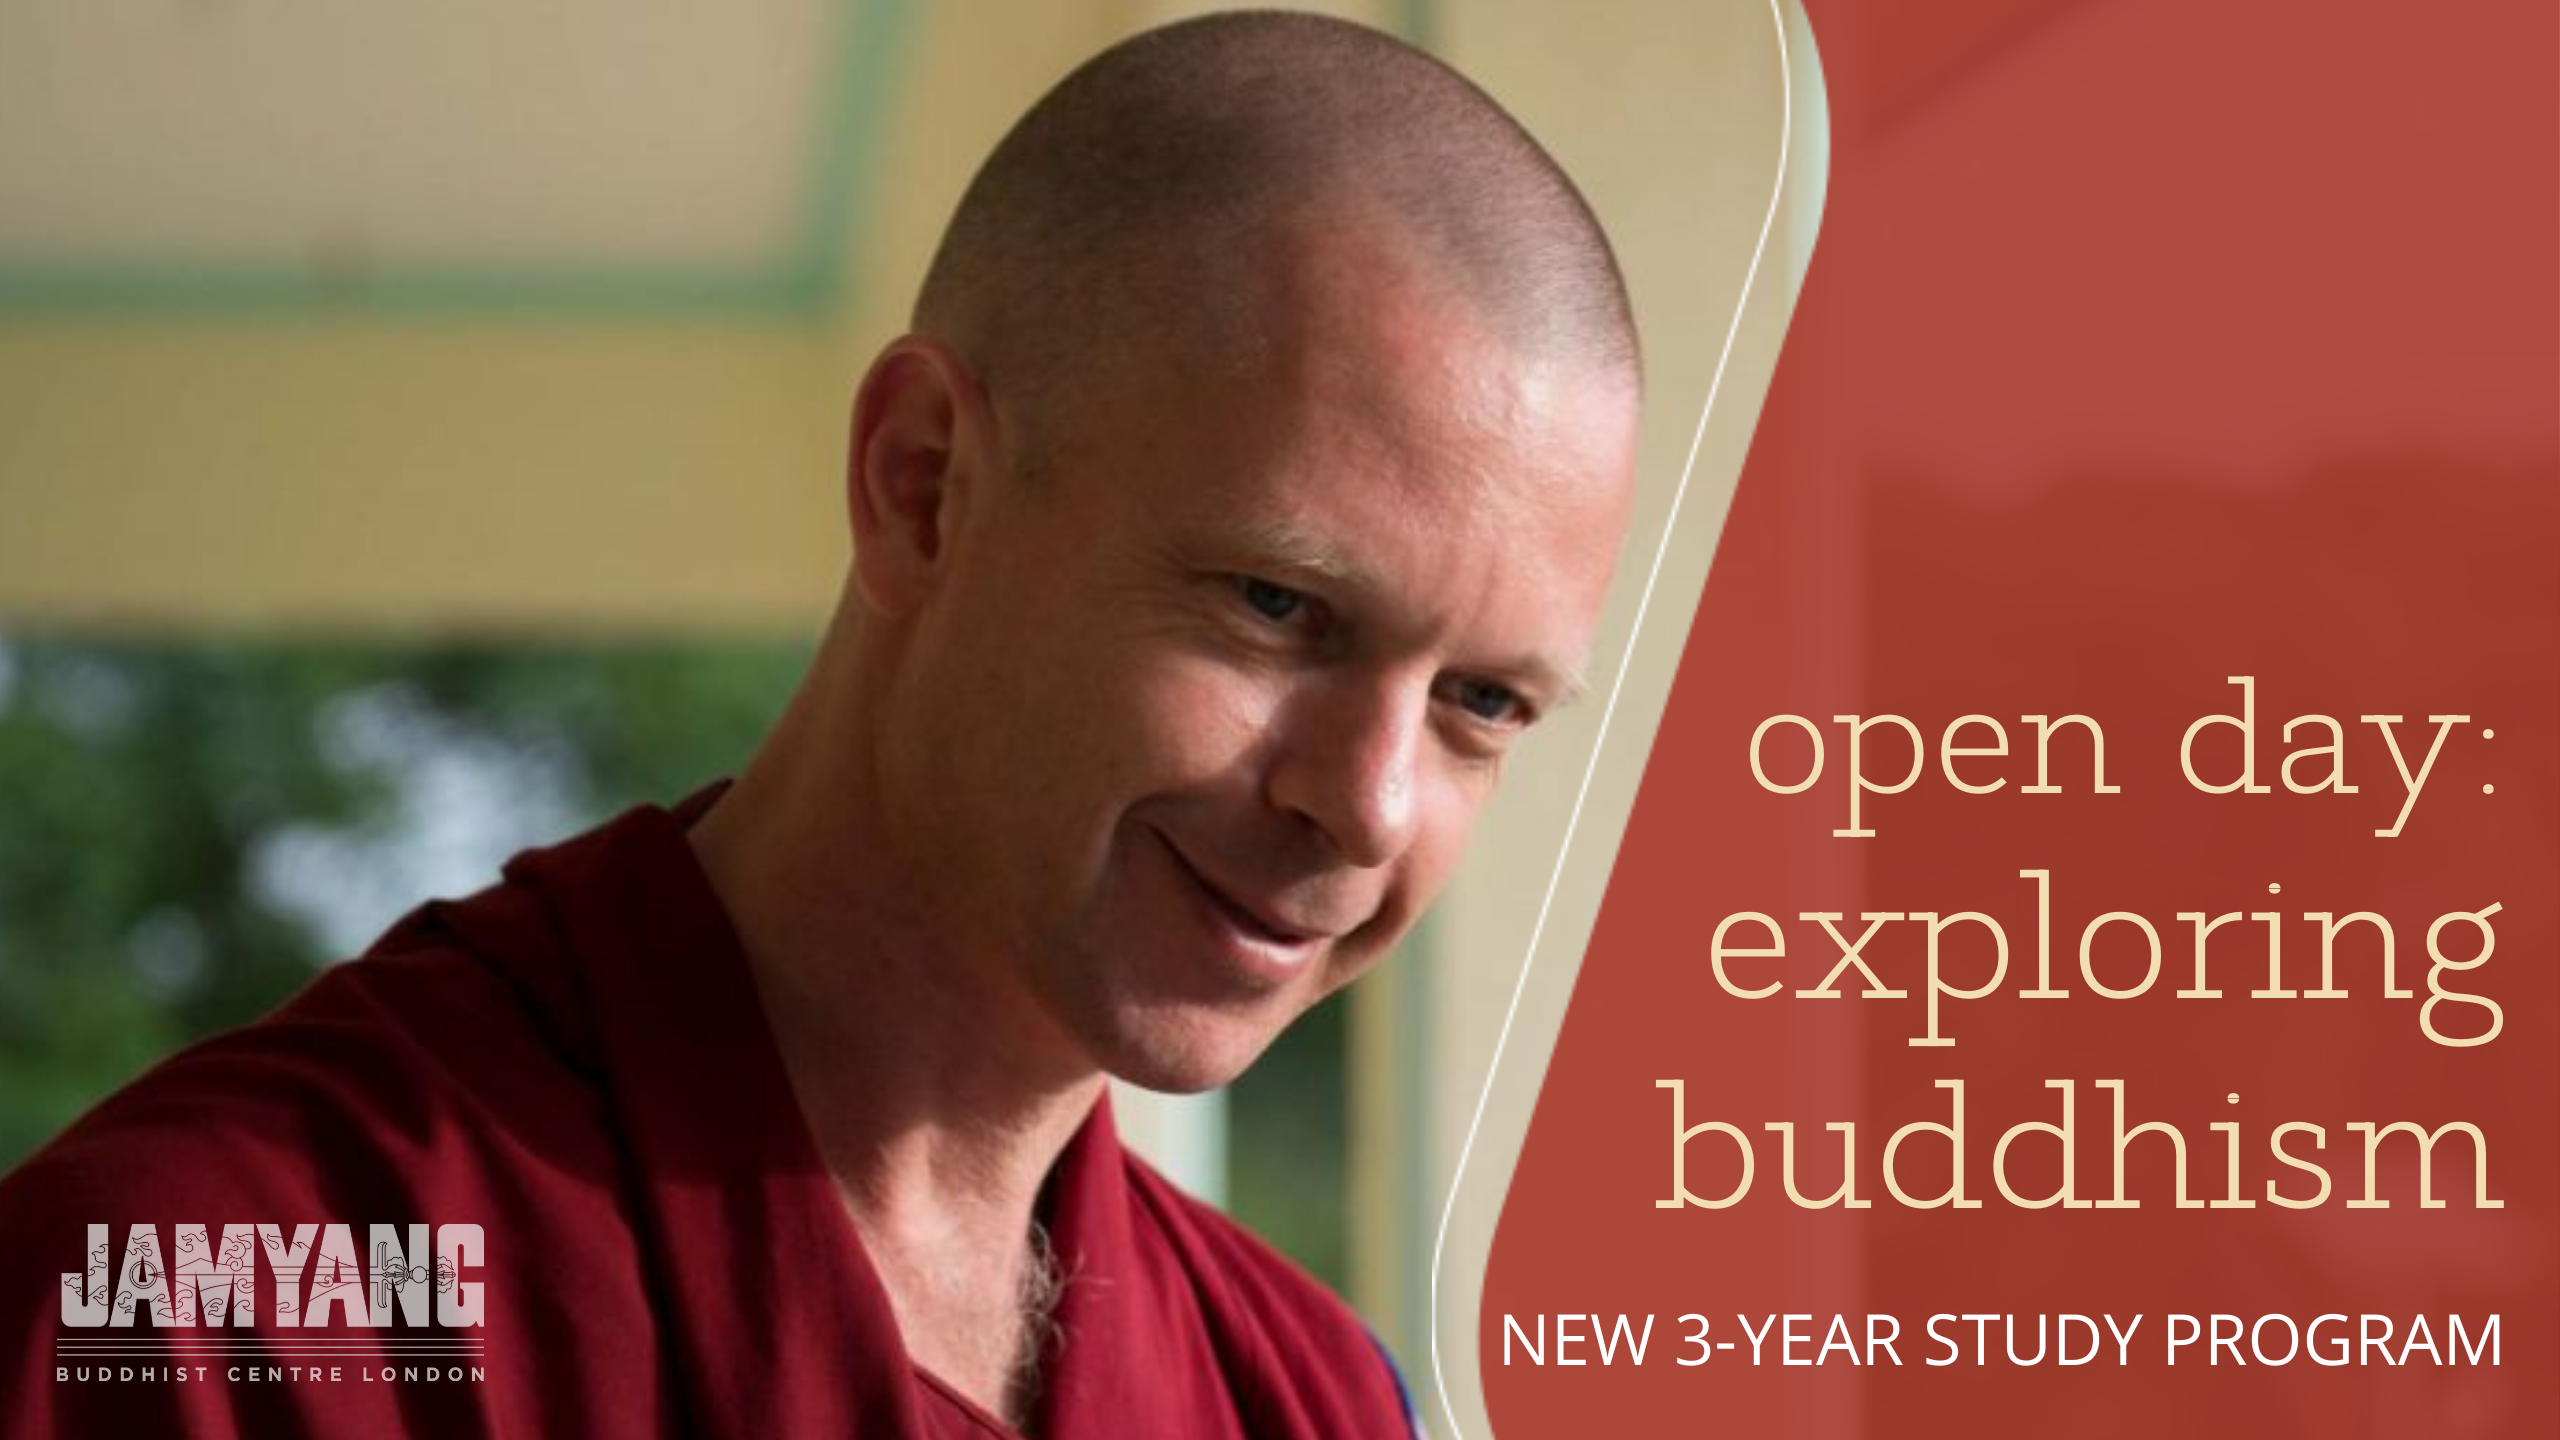 FPMT New Study Programme 'Exploring Buddhism'. Open Day with Geshe Namdak